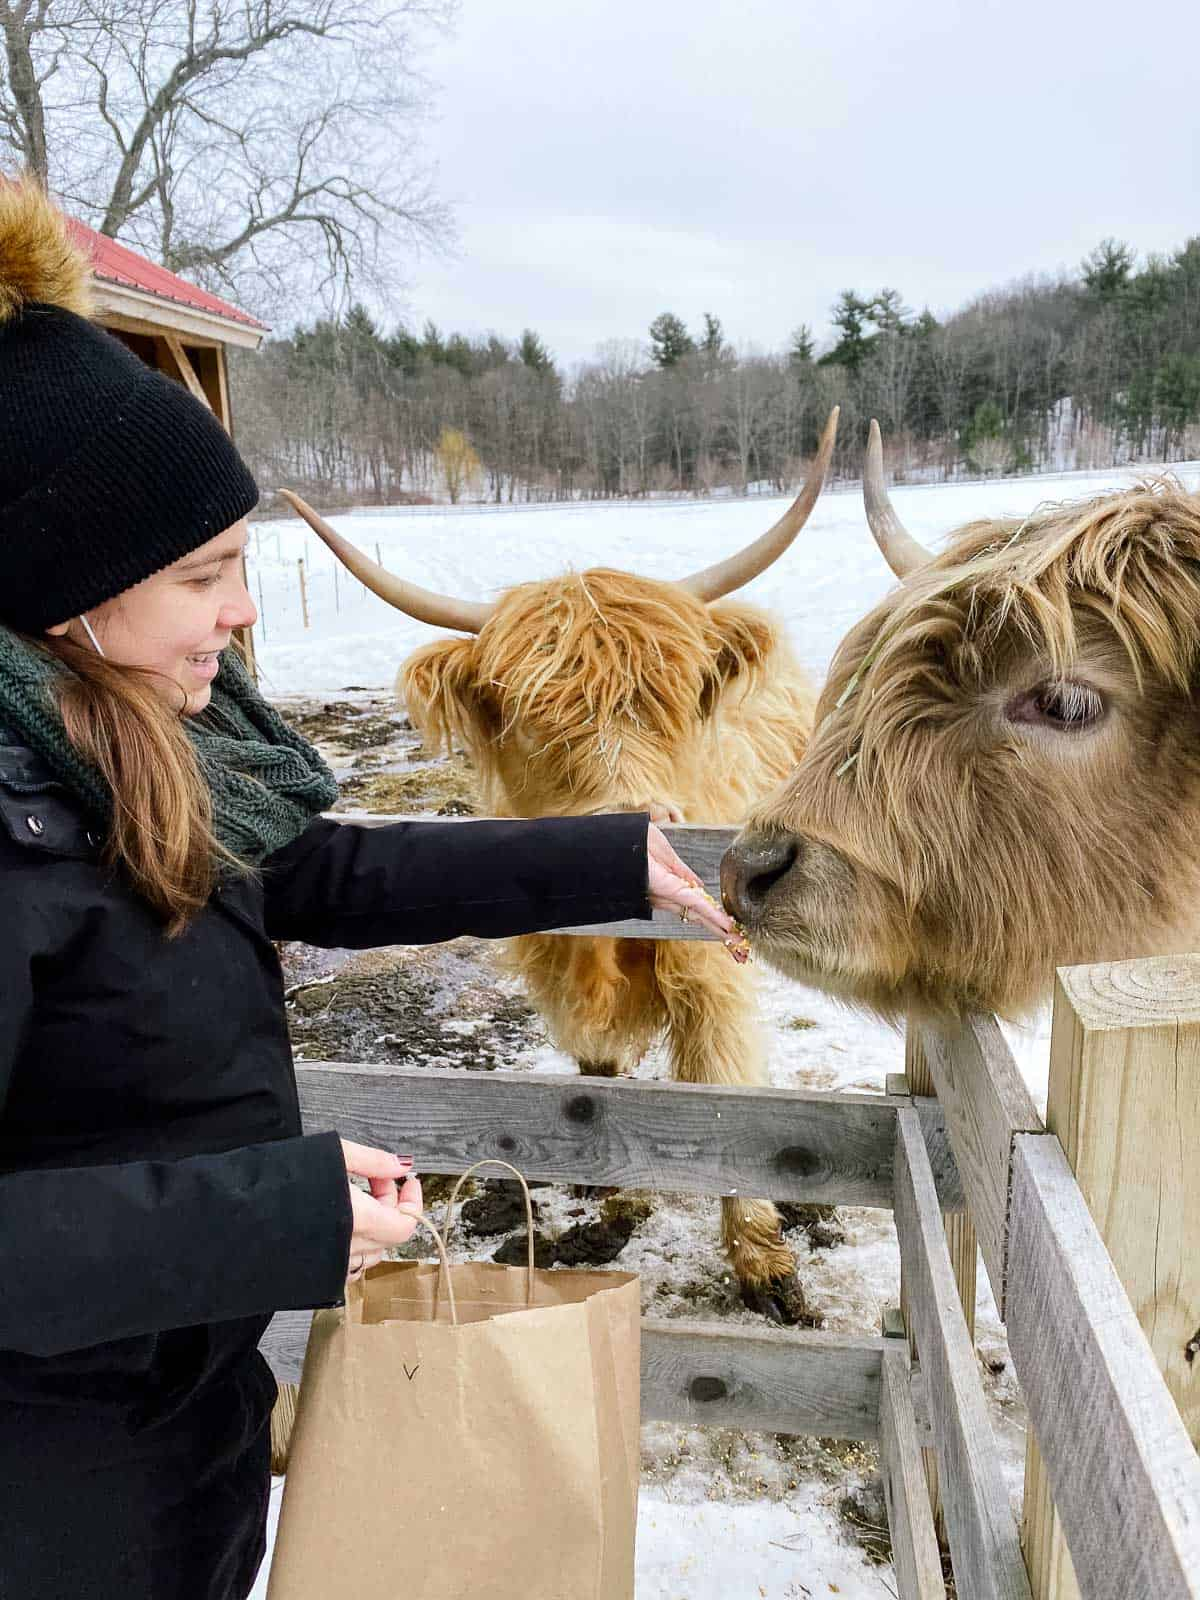 woman in black winter coat feeding two highland cattle at a farm